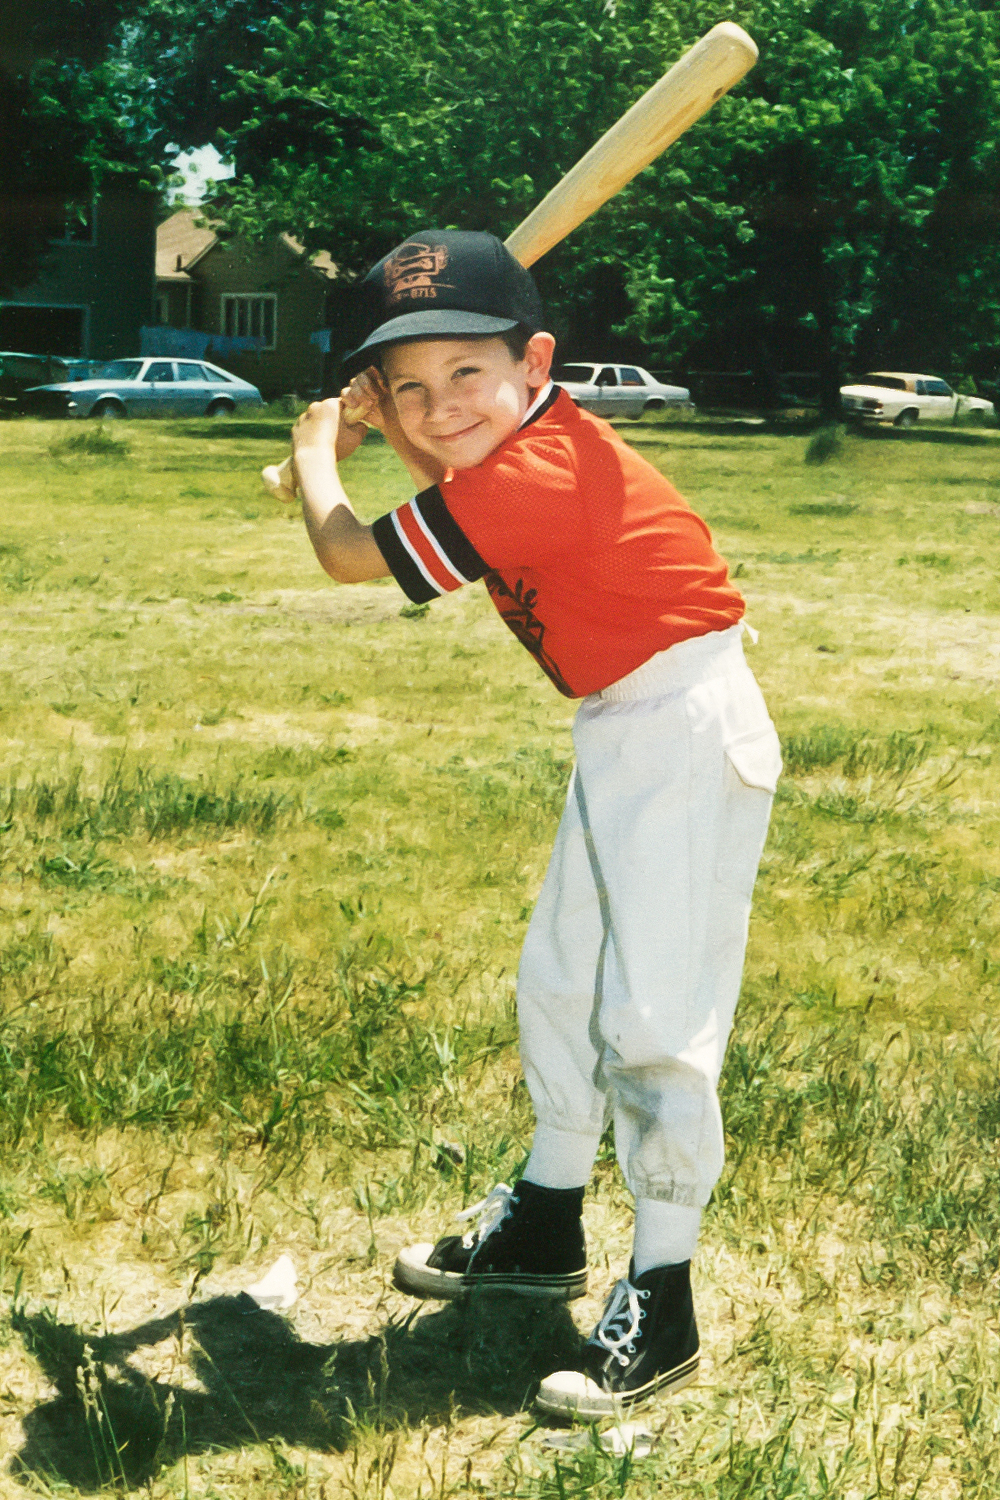 Even from an early age, I showed great enthusiasm for baseball. I was clearly destined to be in the major leagues; just look at my killer batting stance and intimidating game face...